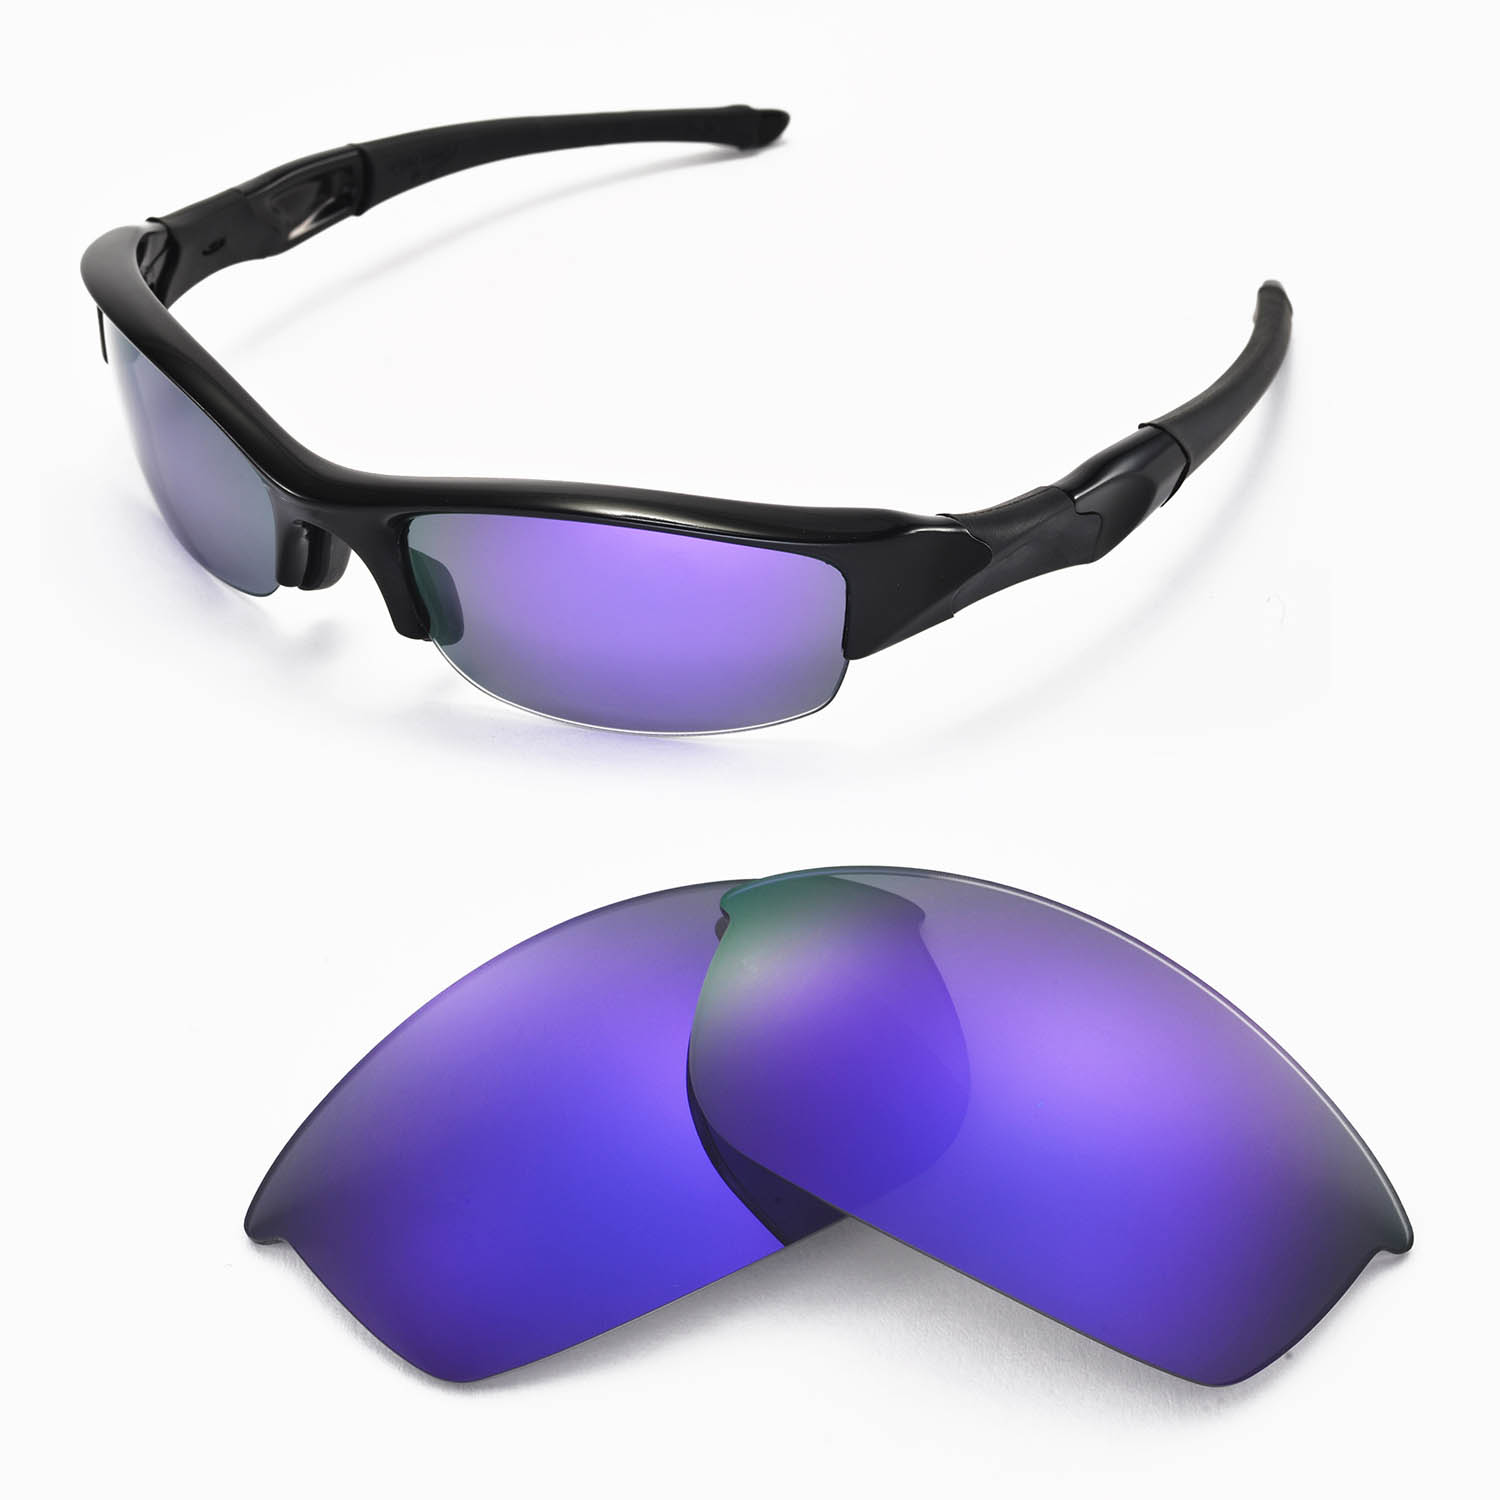 e096519a35 Walleva Replacement Lenses for Oakley Flak Jacket .. in Pakaian ...